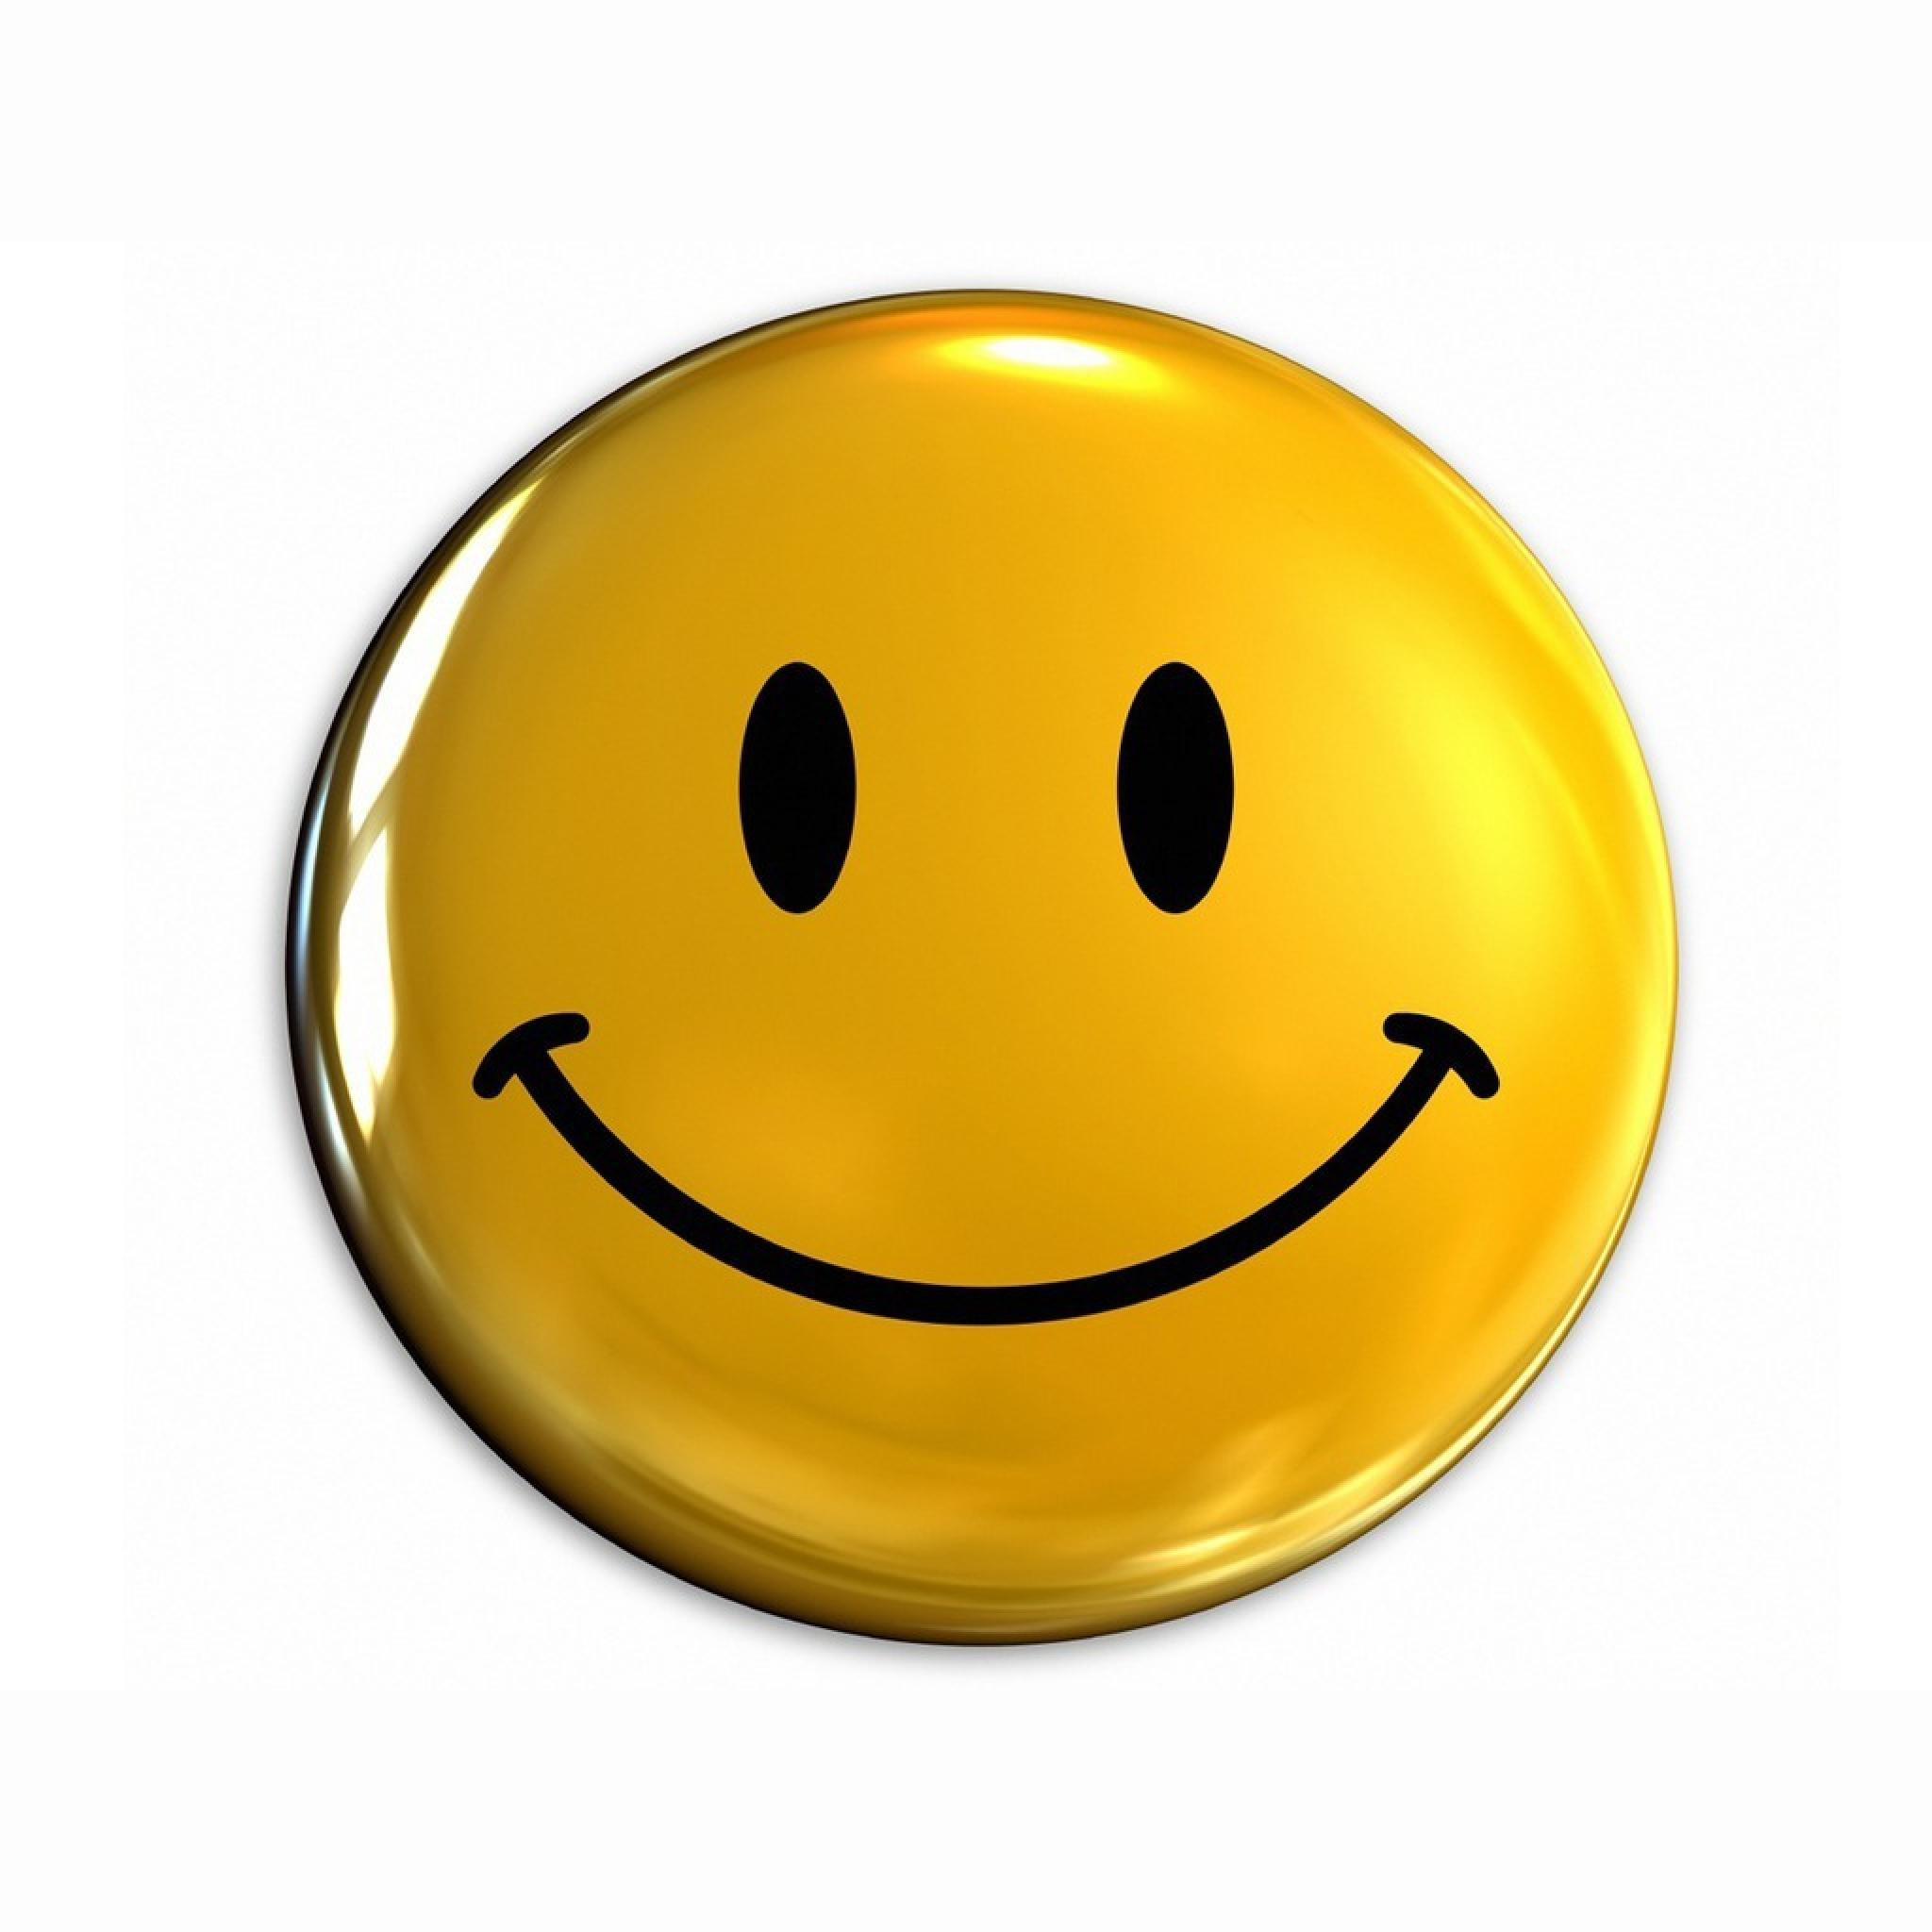 Miscellaneous   Smiley Face Emoticon   iPad iPhone HD Wallpaper 2048x2048